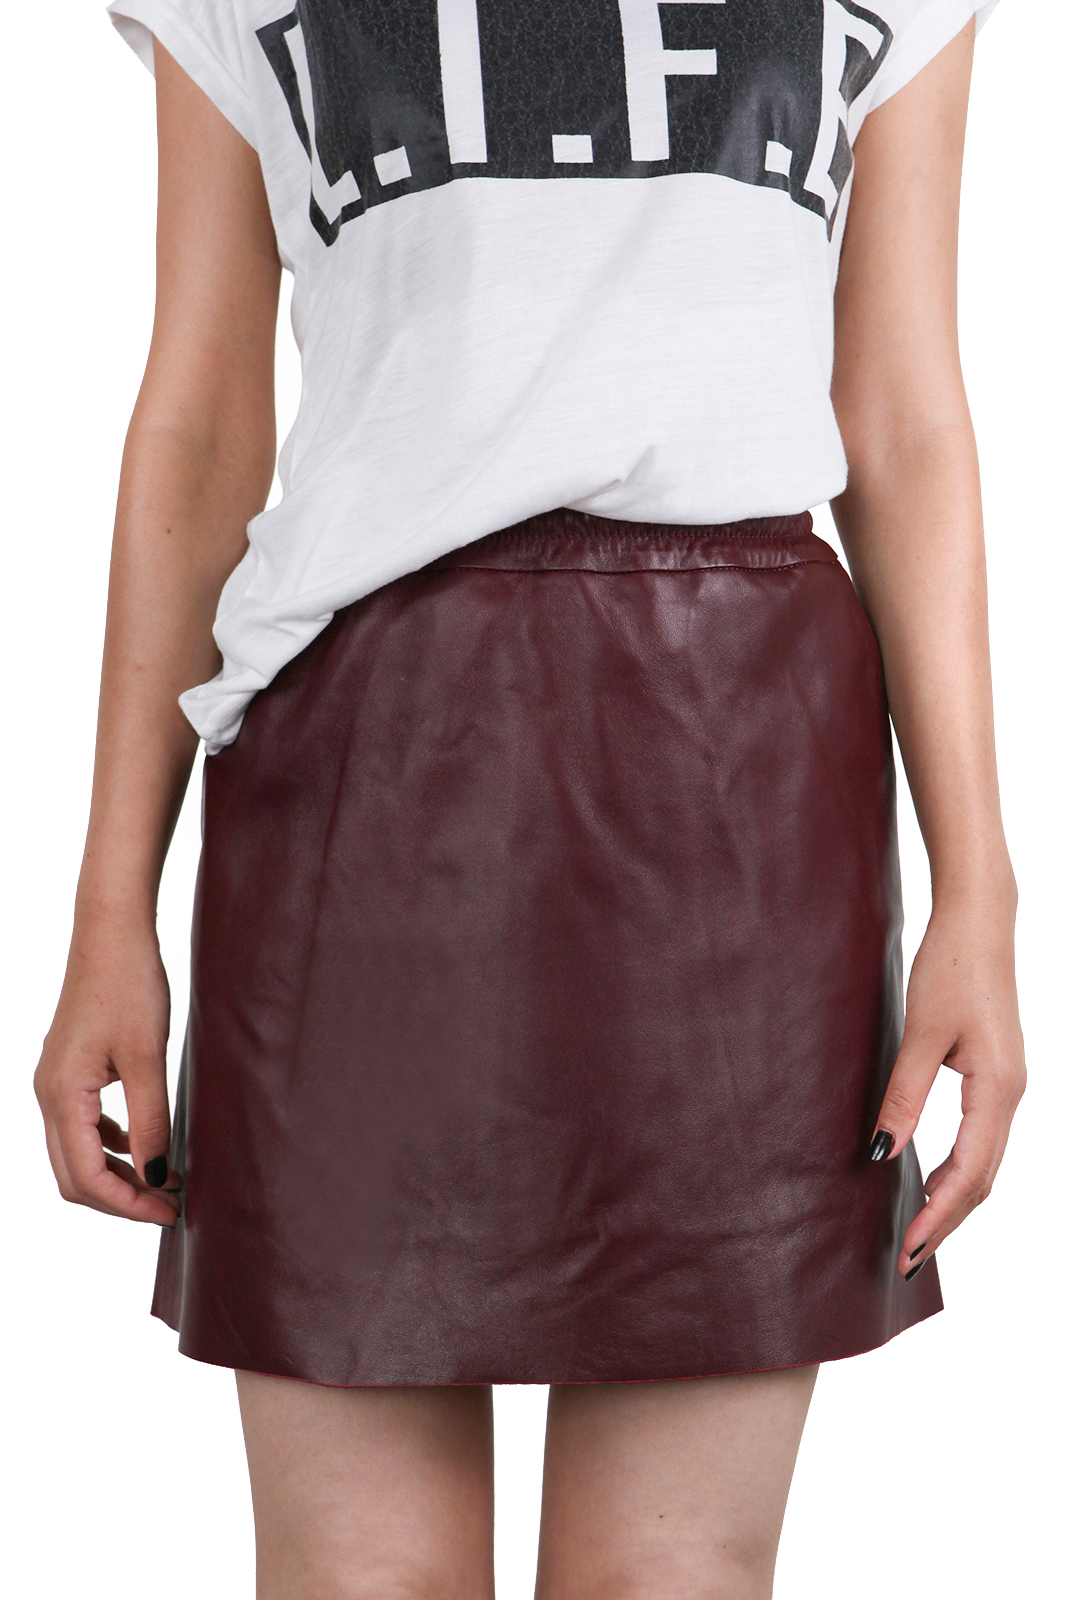 IPAW1001 Bordeaux Leather Skirt